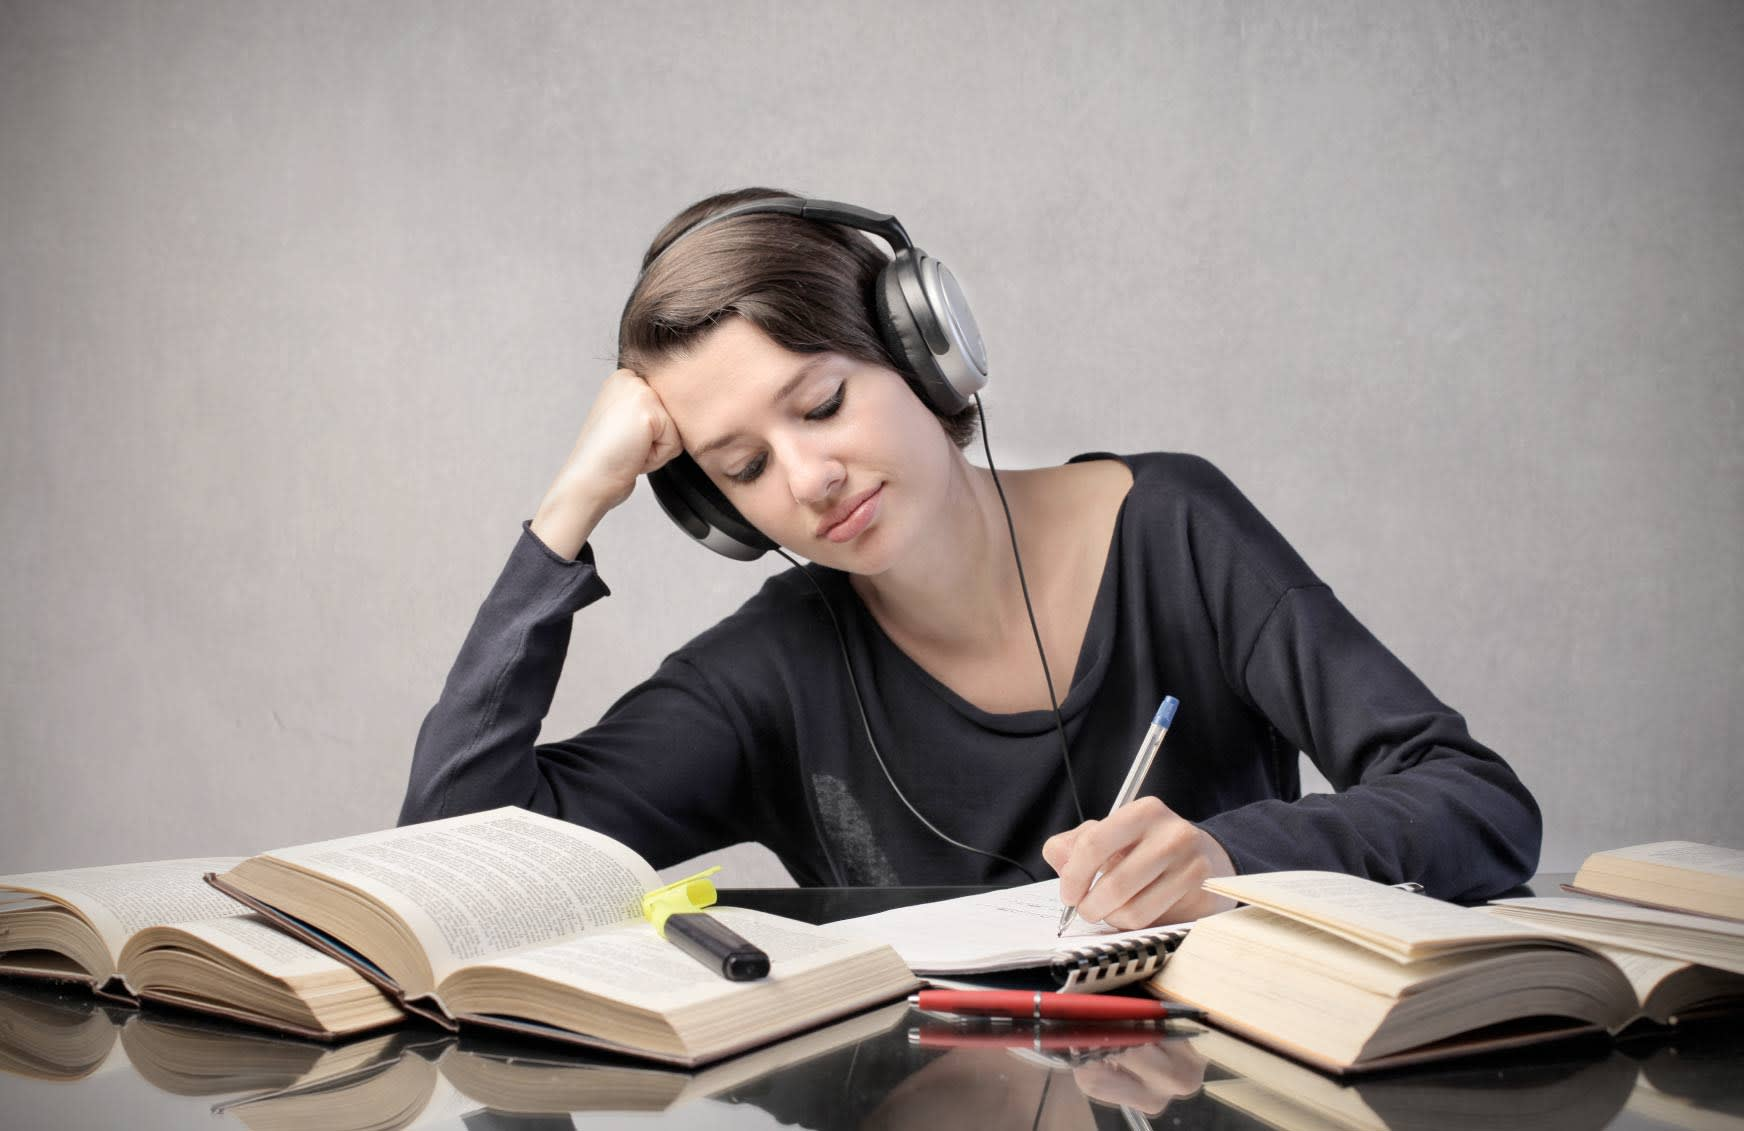 Image result for listening to music while writing